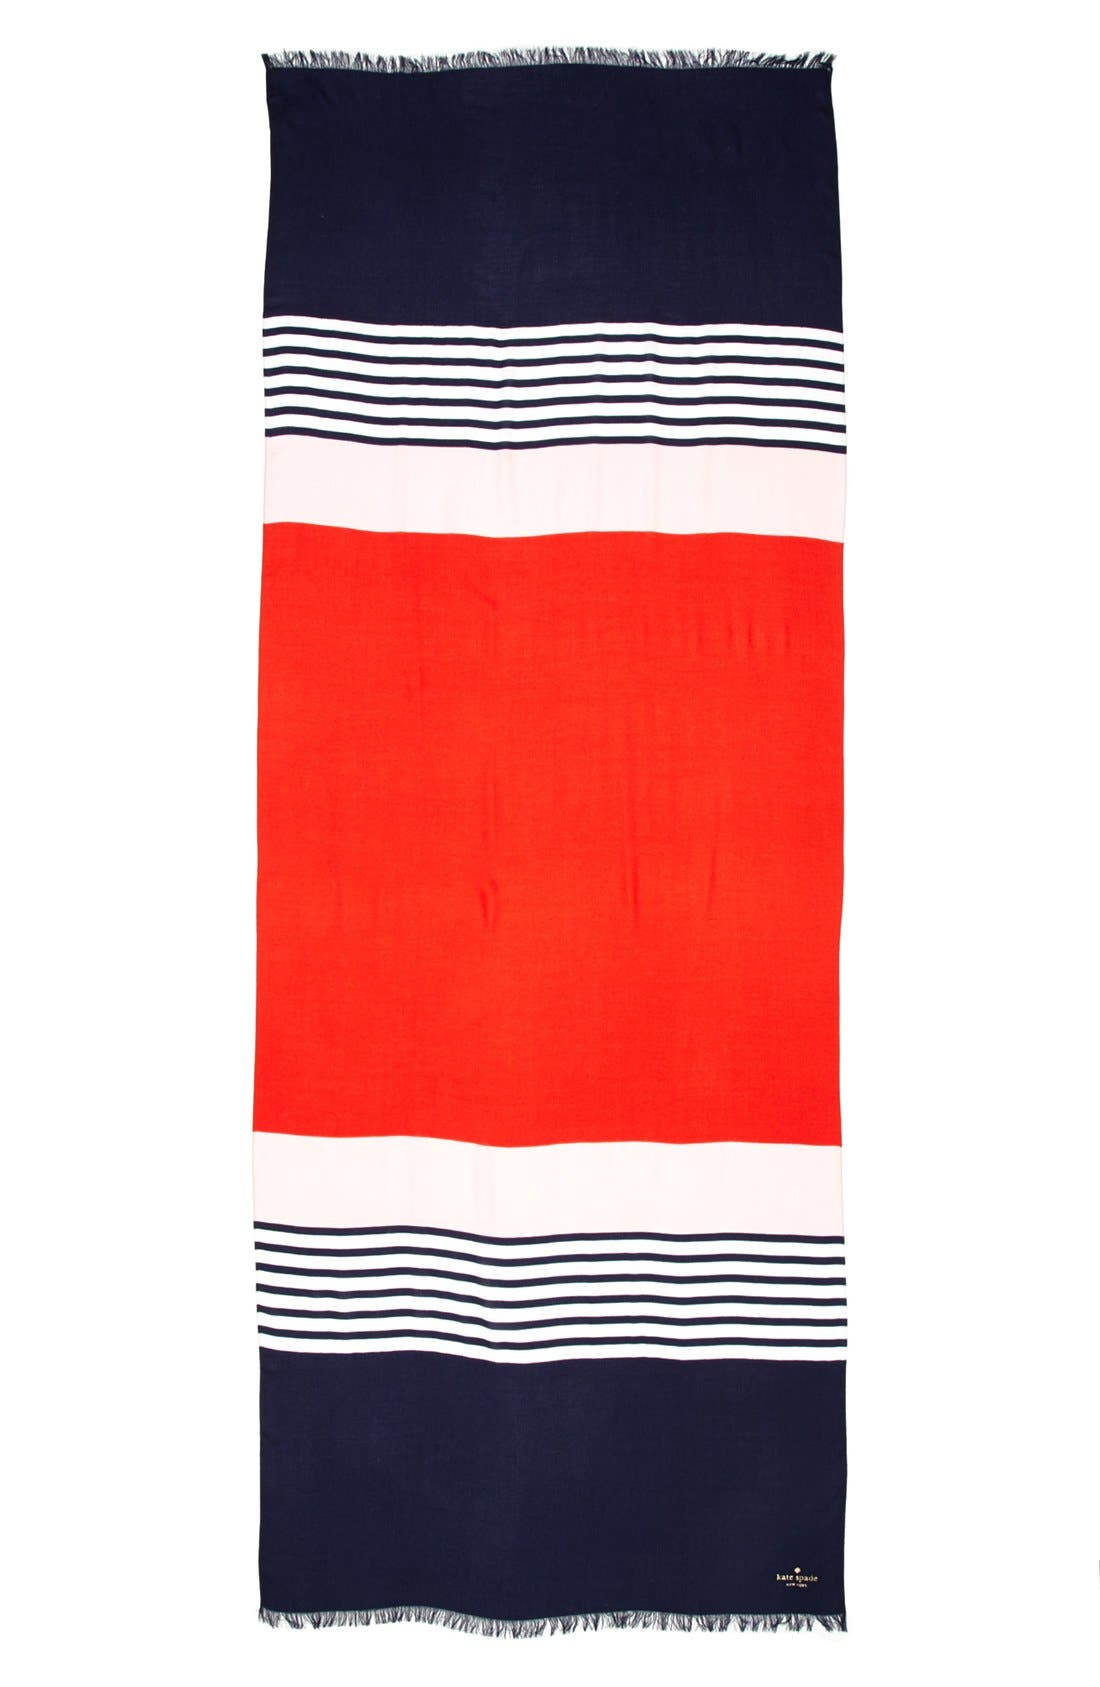 KATE SPADE NEW YORK,                             colorblock scarf,                             Alternate thumbnail 2, color,                             600